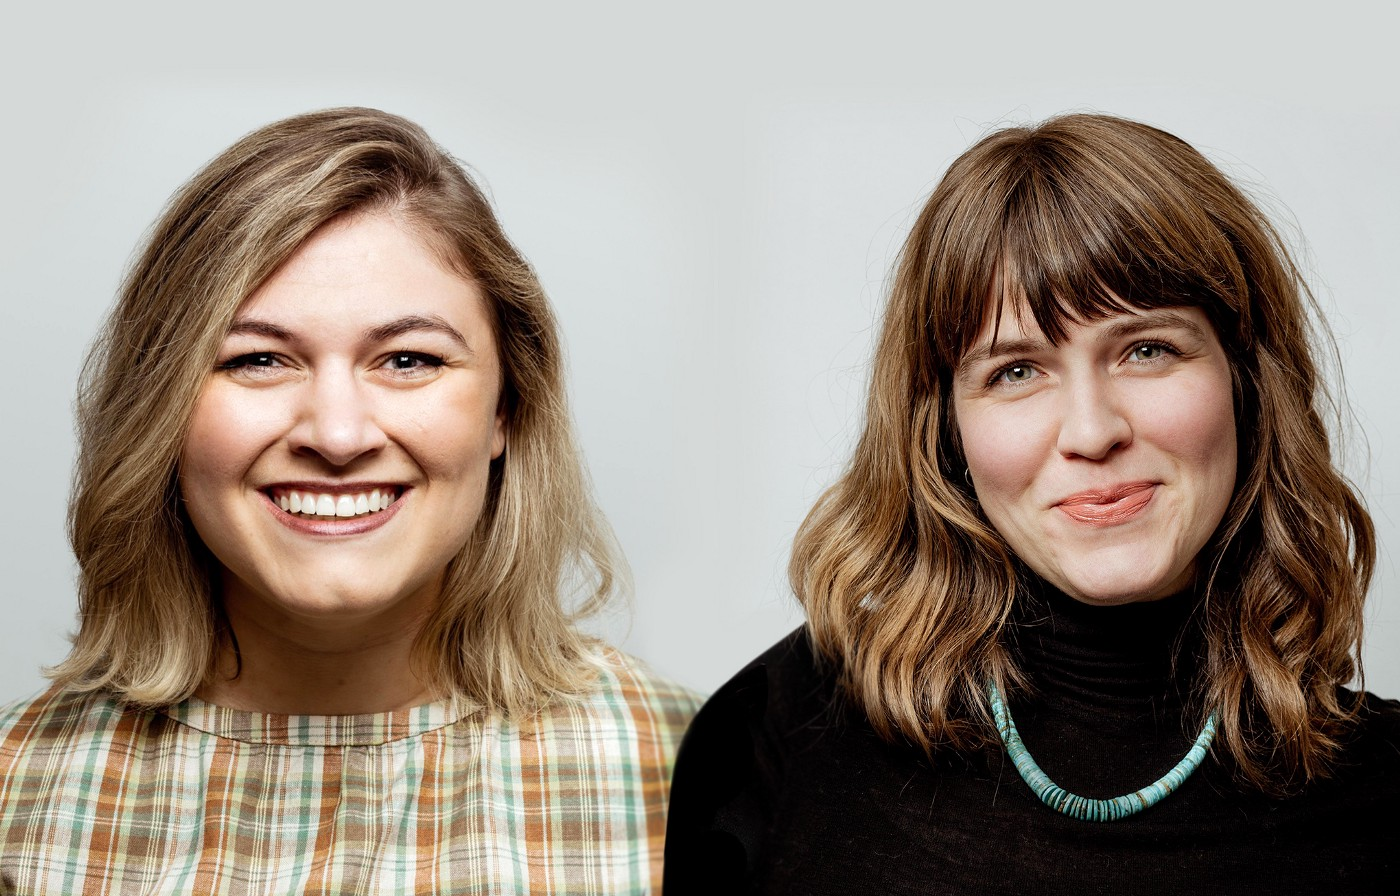 The authors smile brightly with Nora Elena Genster on the left and Claire Odom on the right against a neutral background.